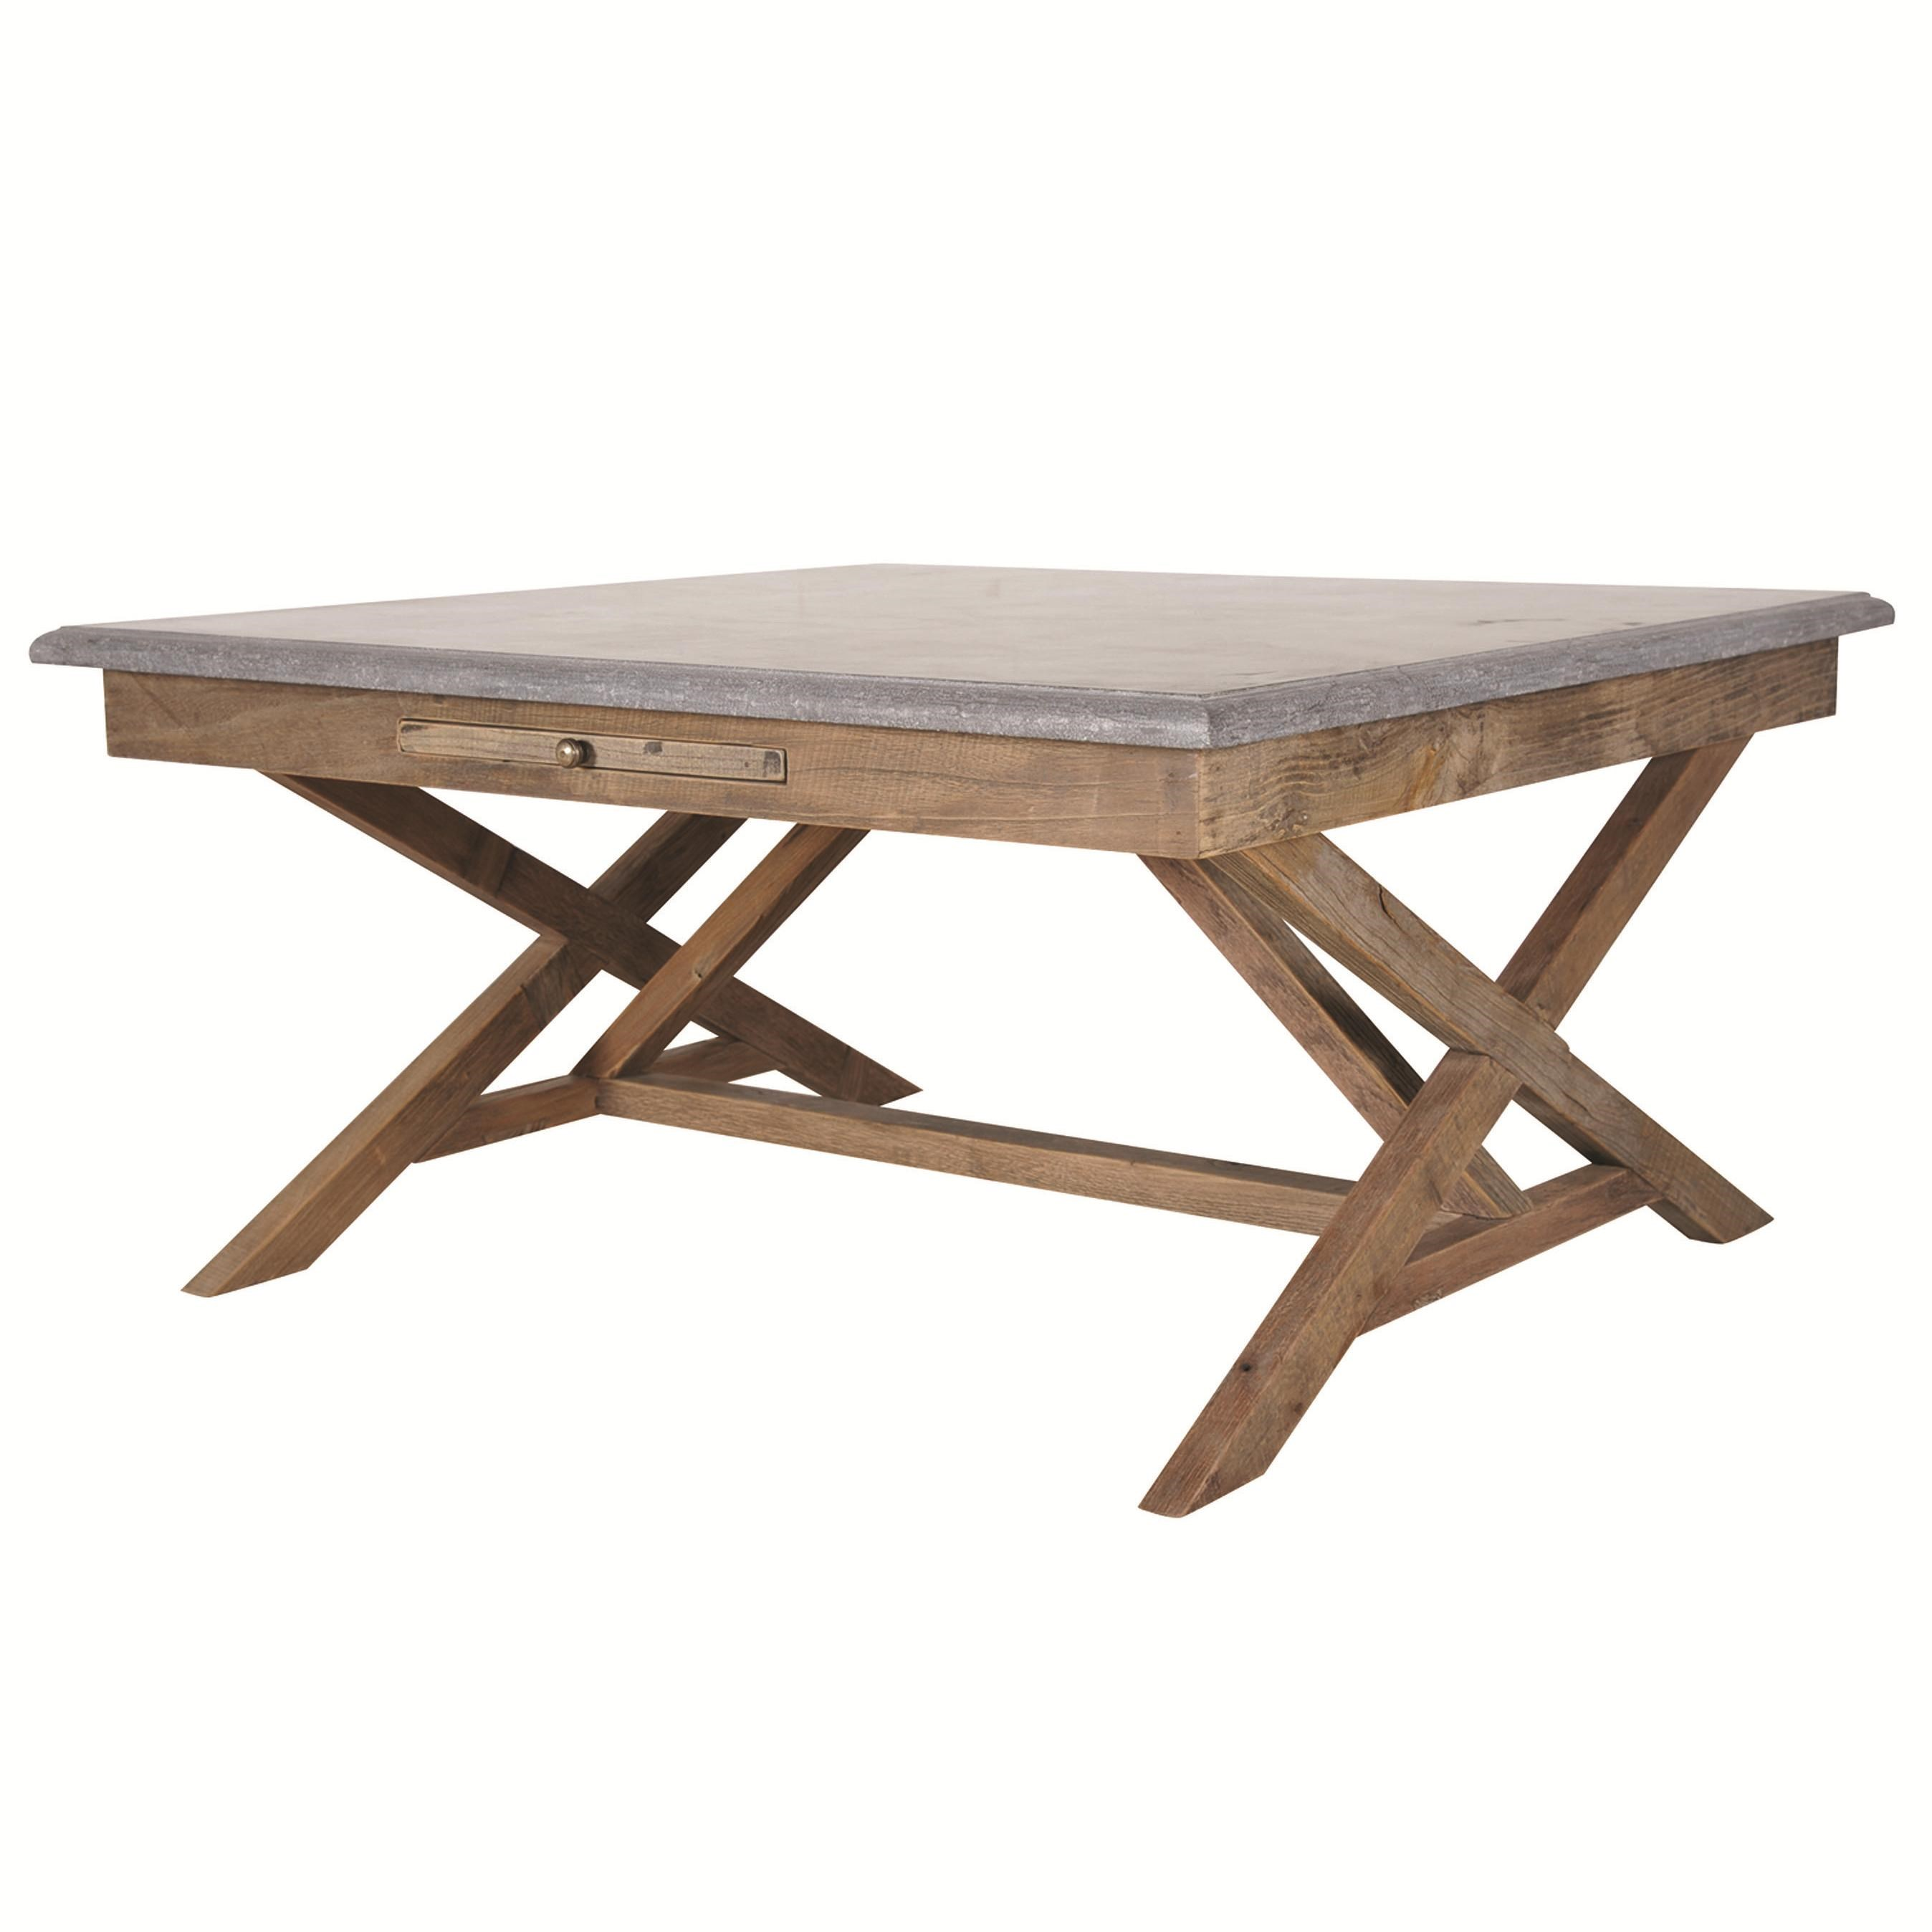 Four Hands Hughes Palma 35 Inch Bluestone Bunching Table With Stretcher